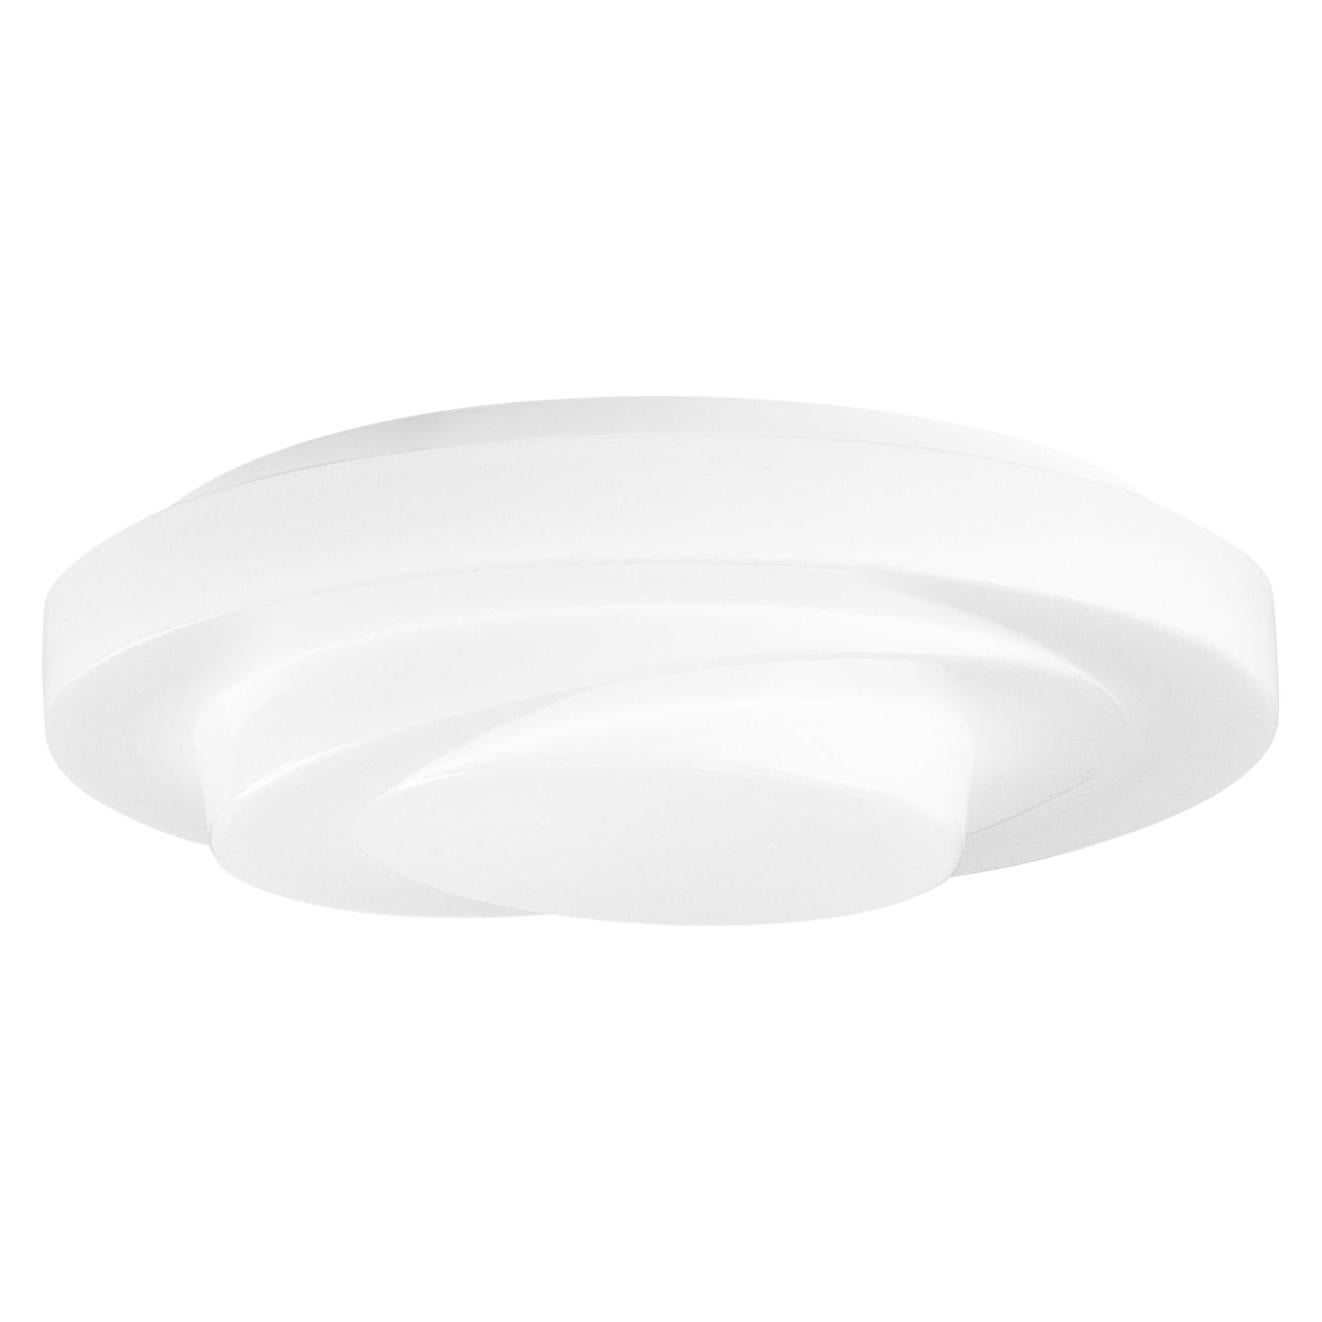 Leucos Loop-Line LED Flush Mount in White by Toso, Massari & Assoc. with G. Toso